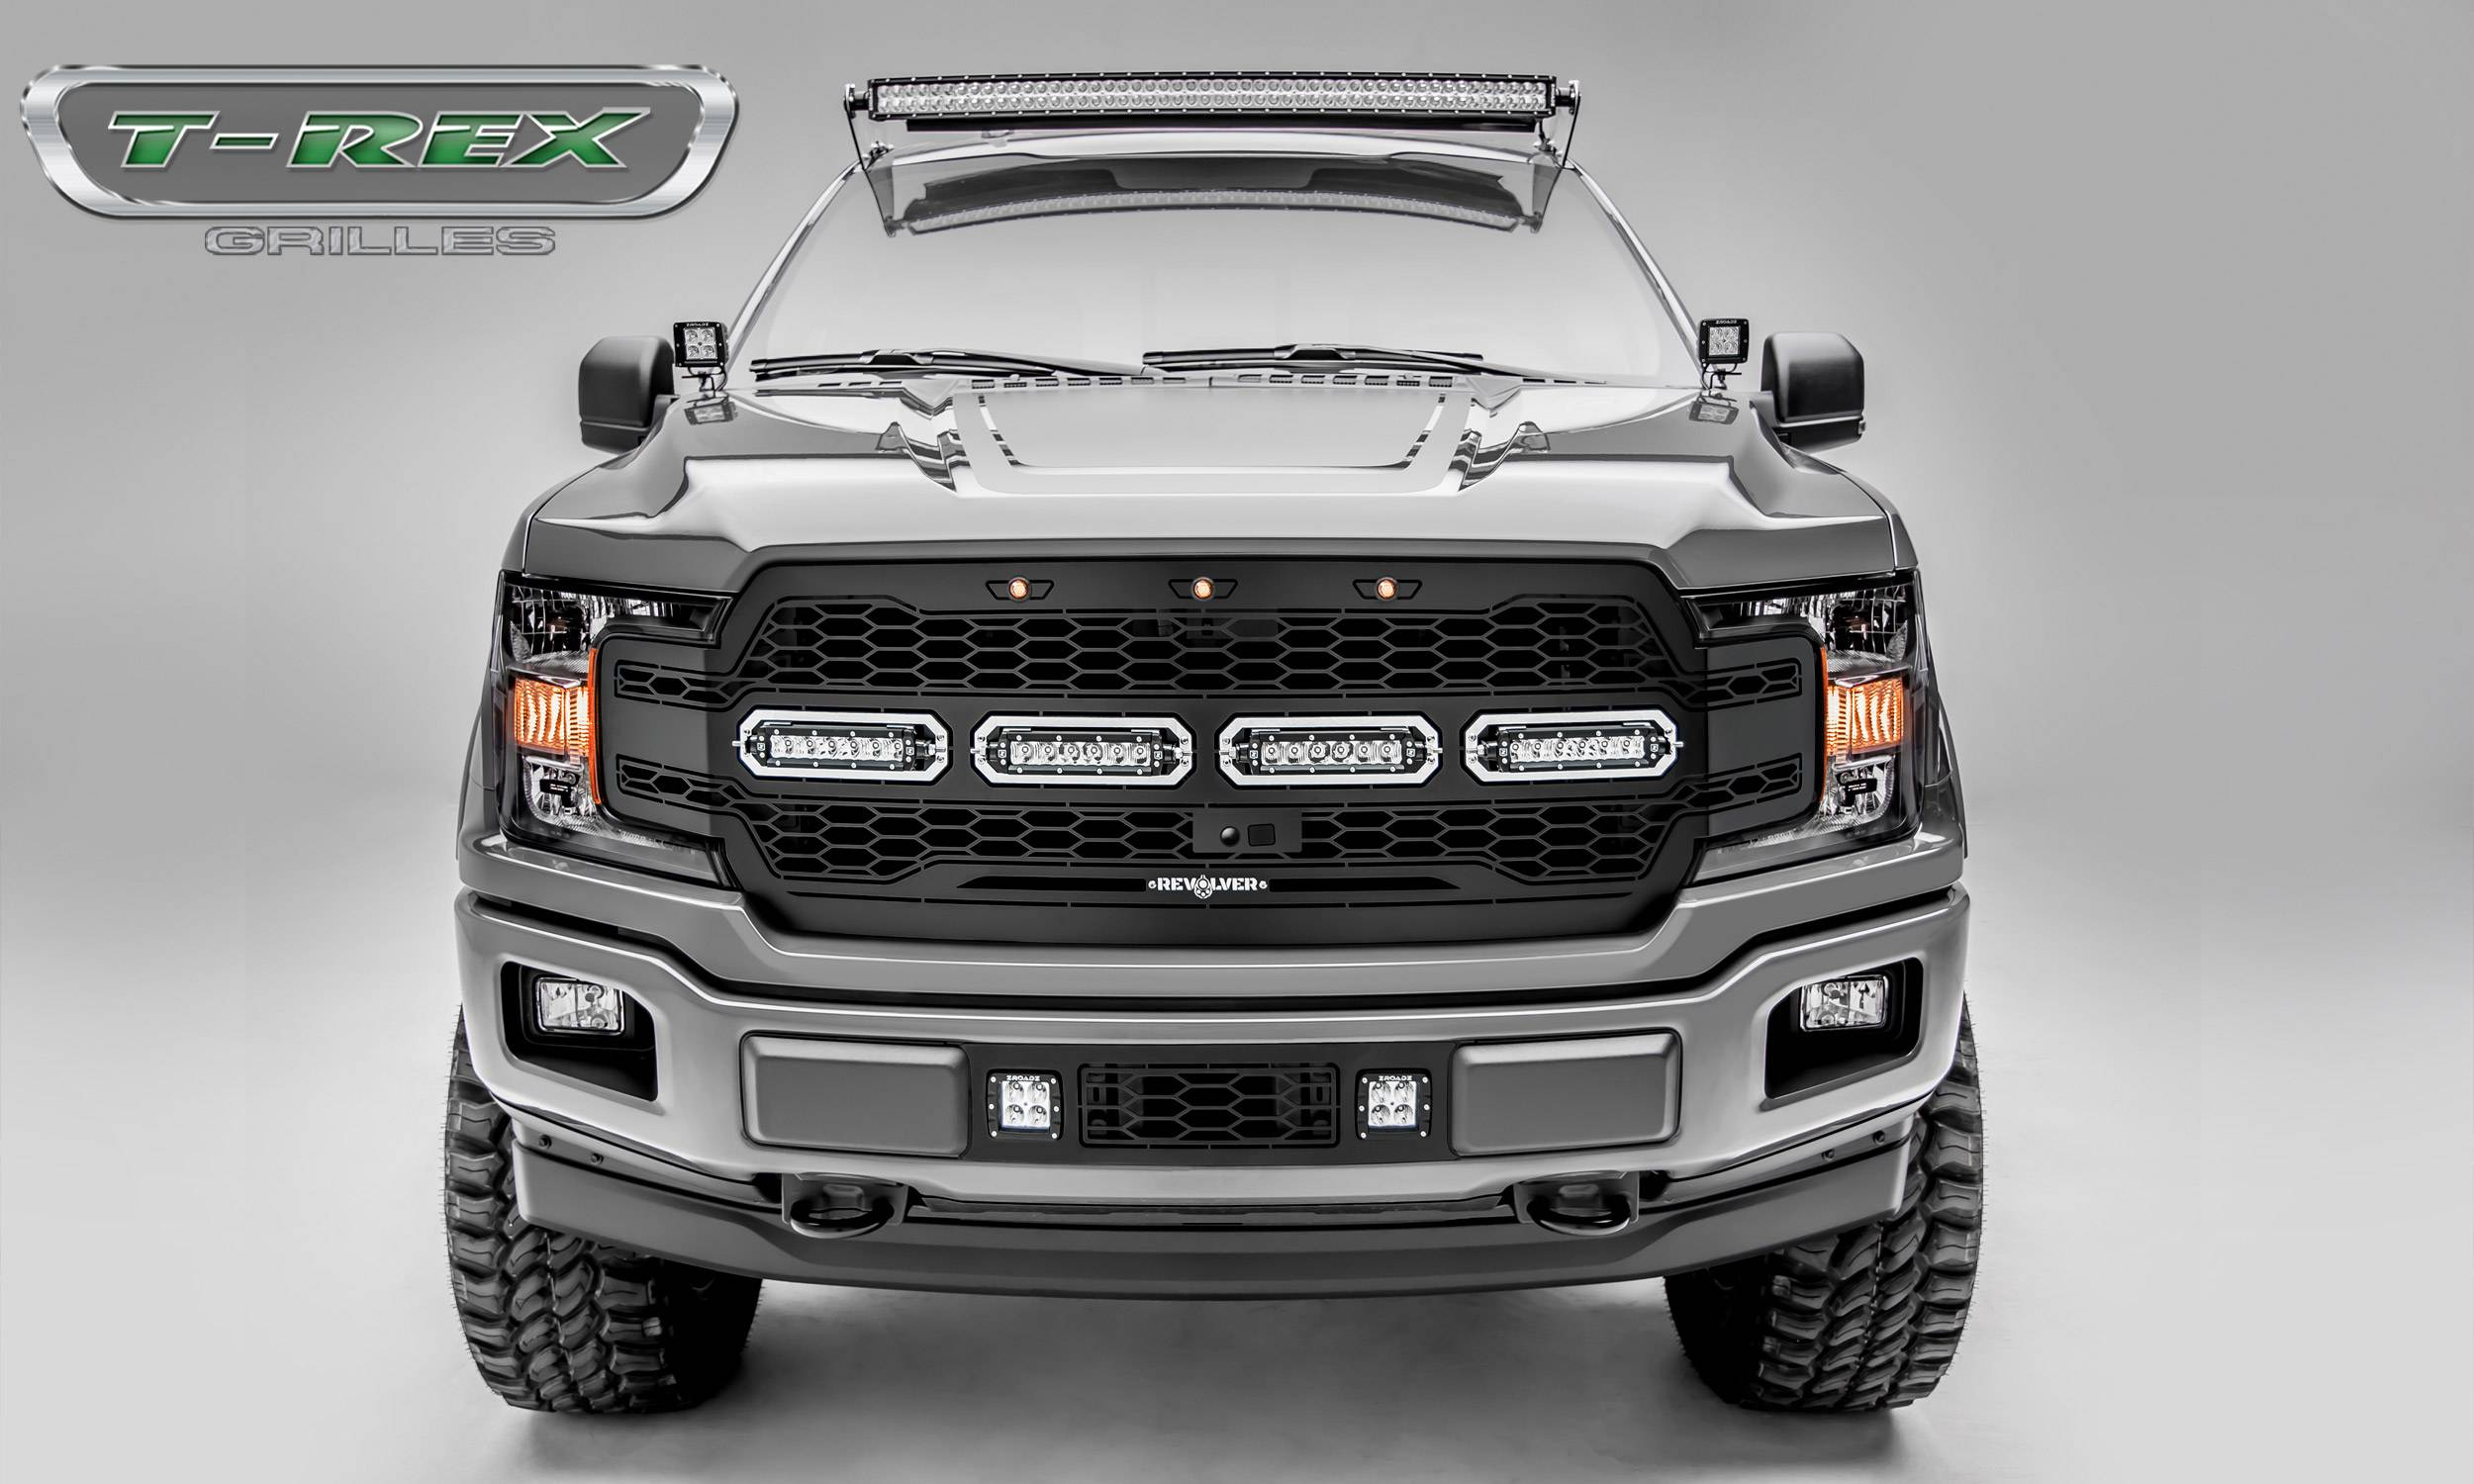 "T-REX Grilles - T-REX Ford F-150 - Revolver Series - Main Grille Replacement w/ (4) 6"" LED Light Bars - Fits Vehicles w/ FFC - Laser Cut Steel Pattern - Pt # 6515791"